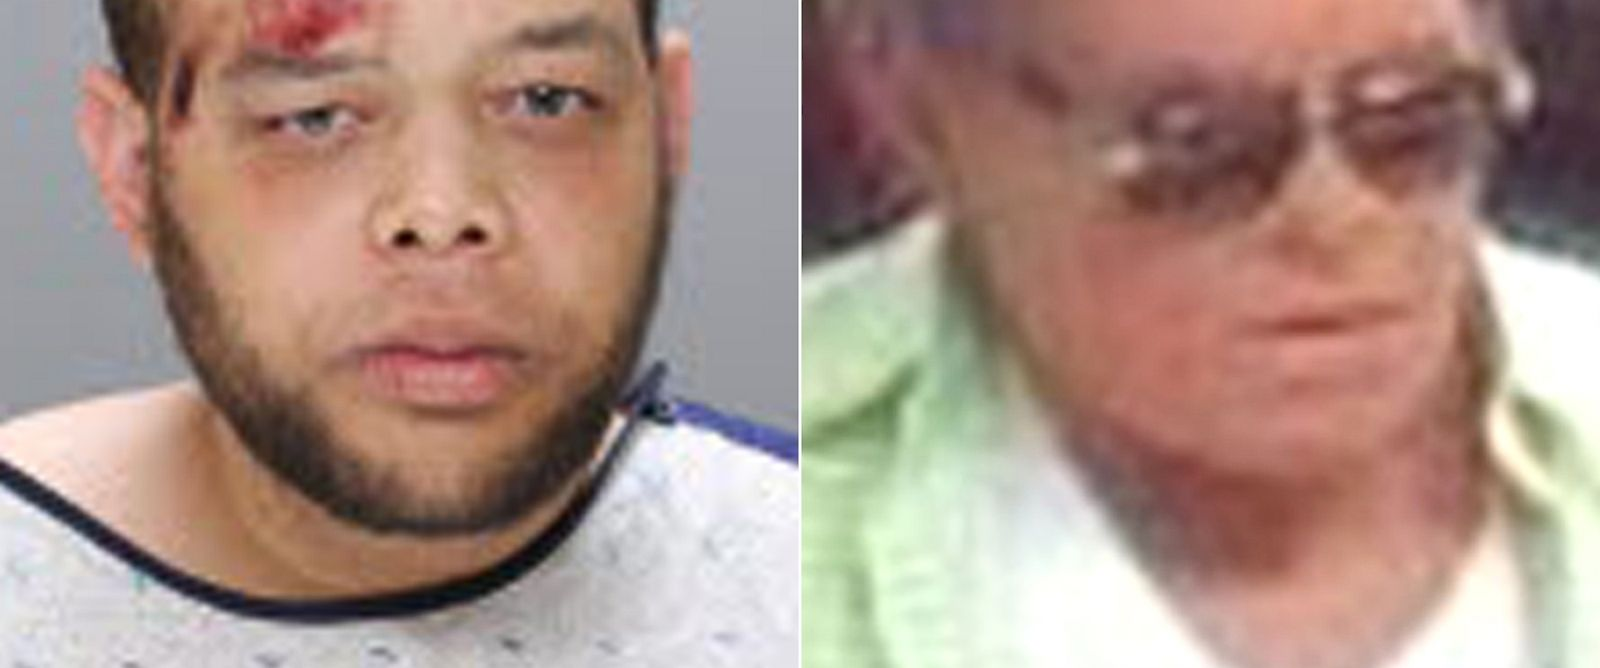 PHOTO: Dion Jordan, left, is in police custody in connection to a series of bank robberies committed by someone wearing a mask depicting an elderly man, right.